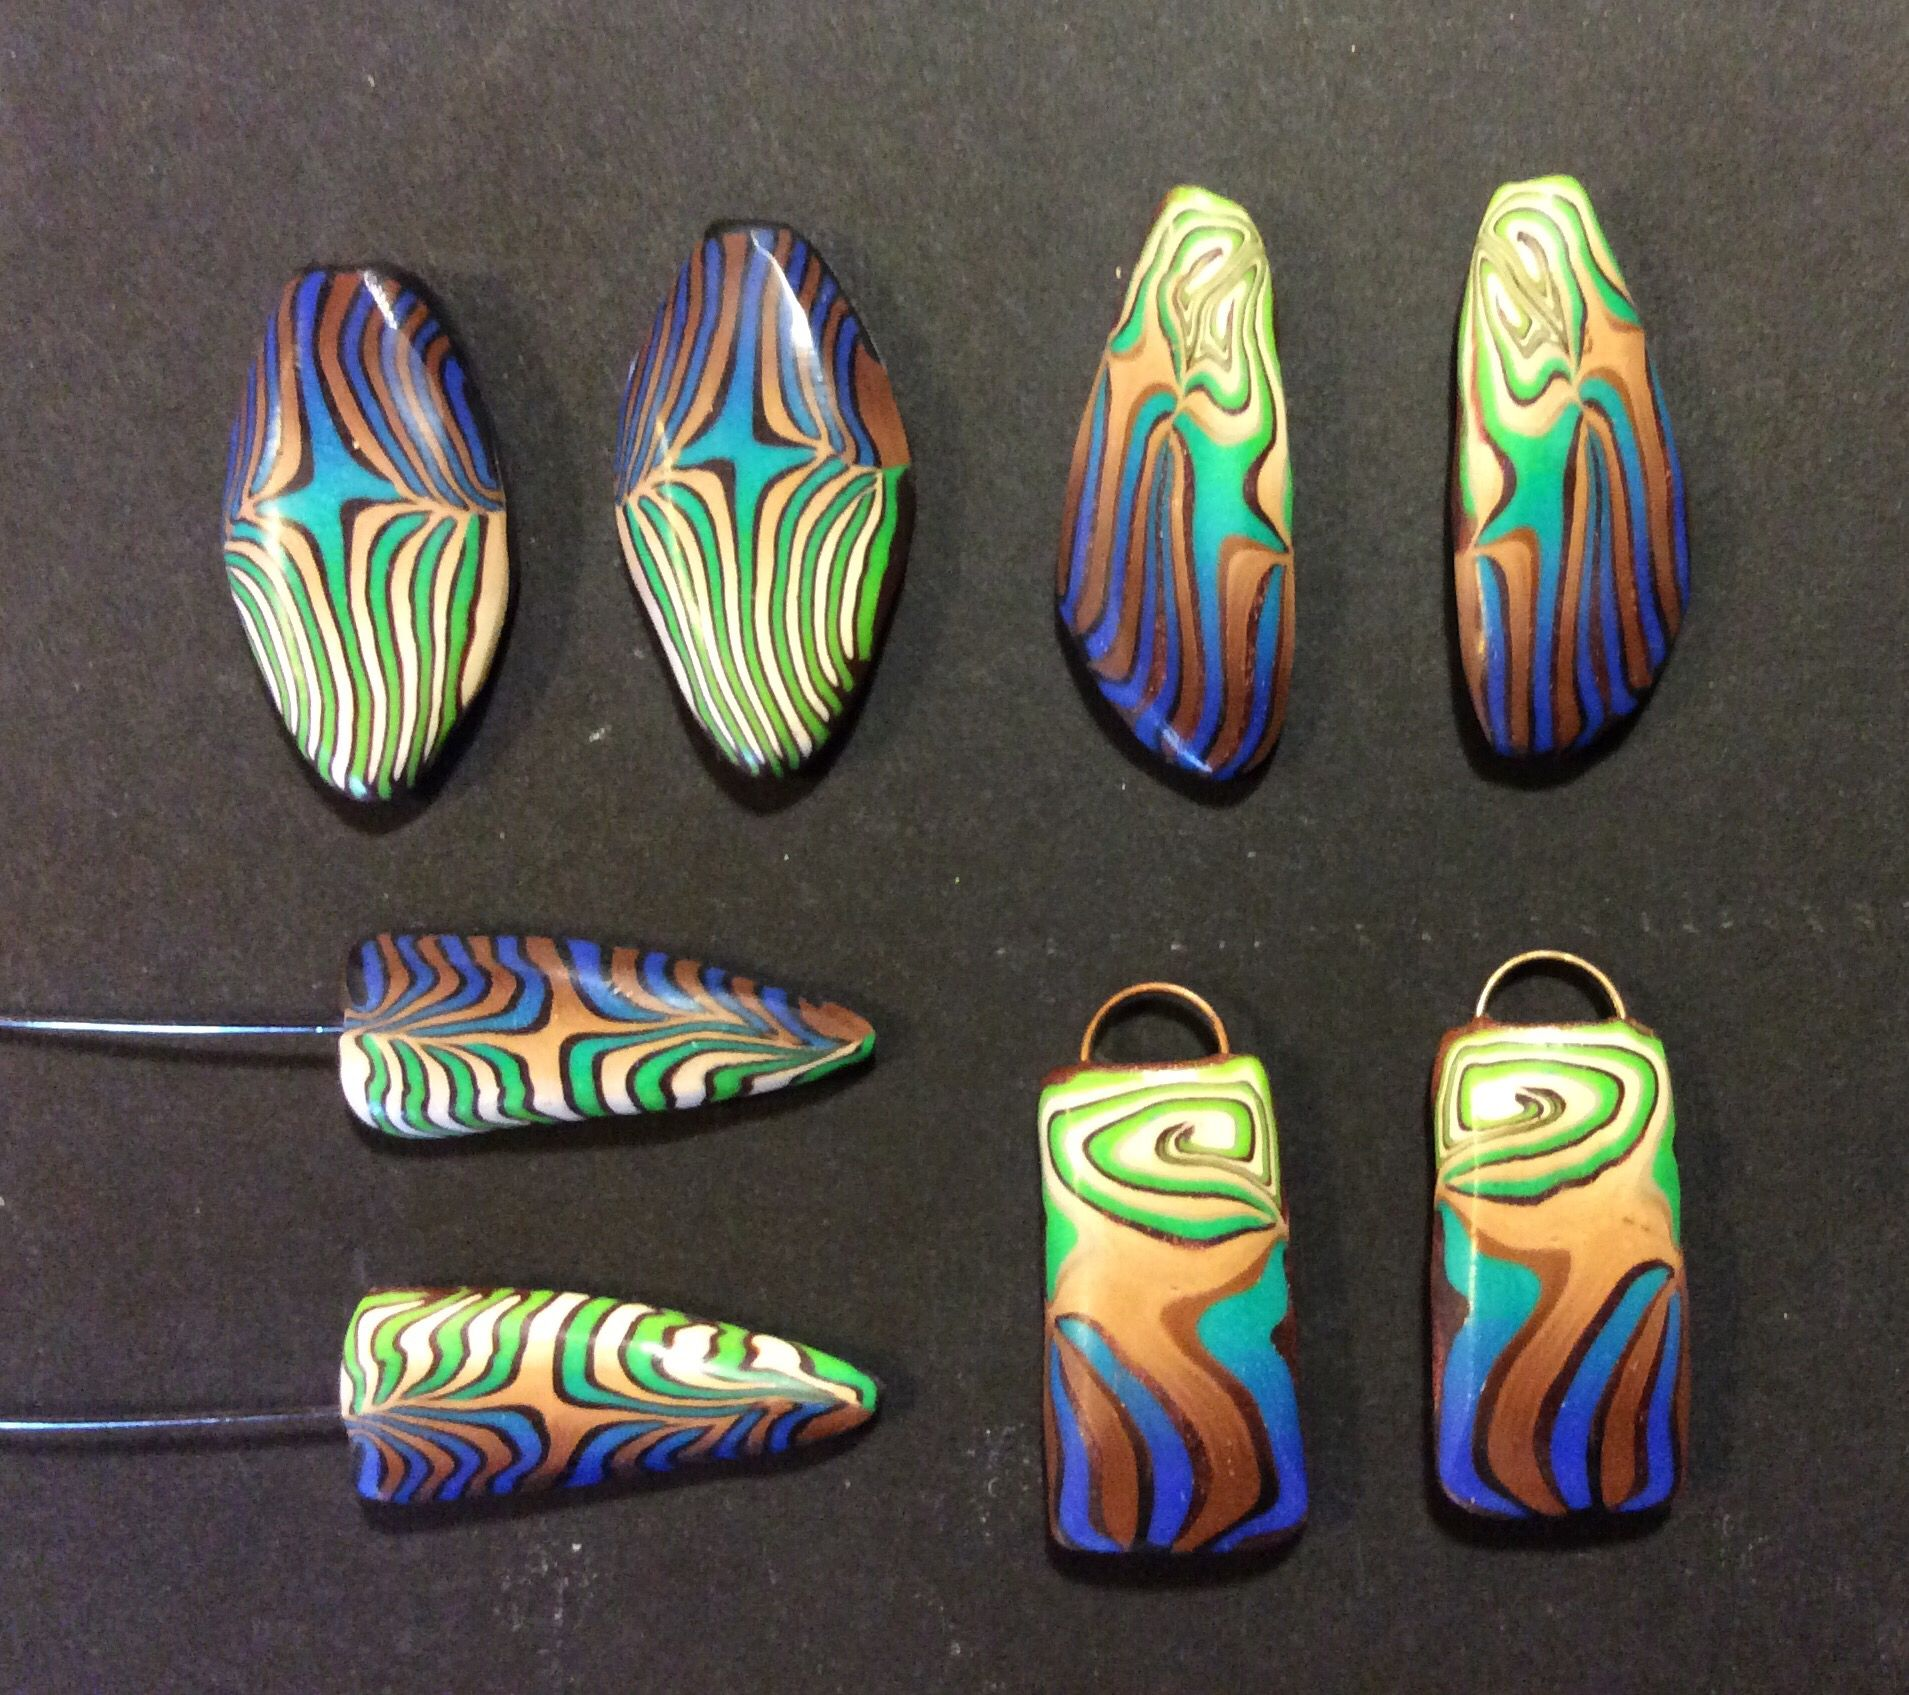 More of that polymer clay crazy cane by Karen Brueggemann. #Polymer #Clay #Canes